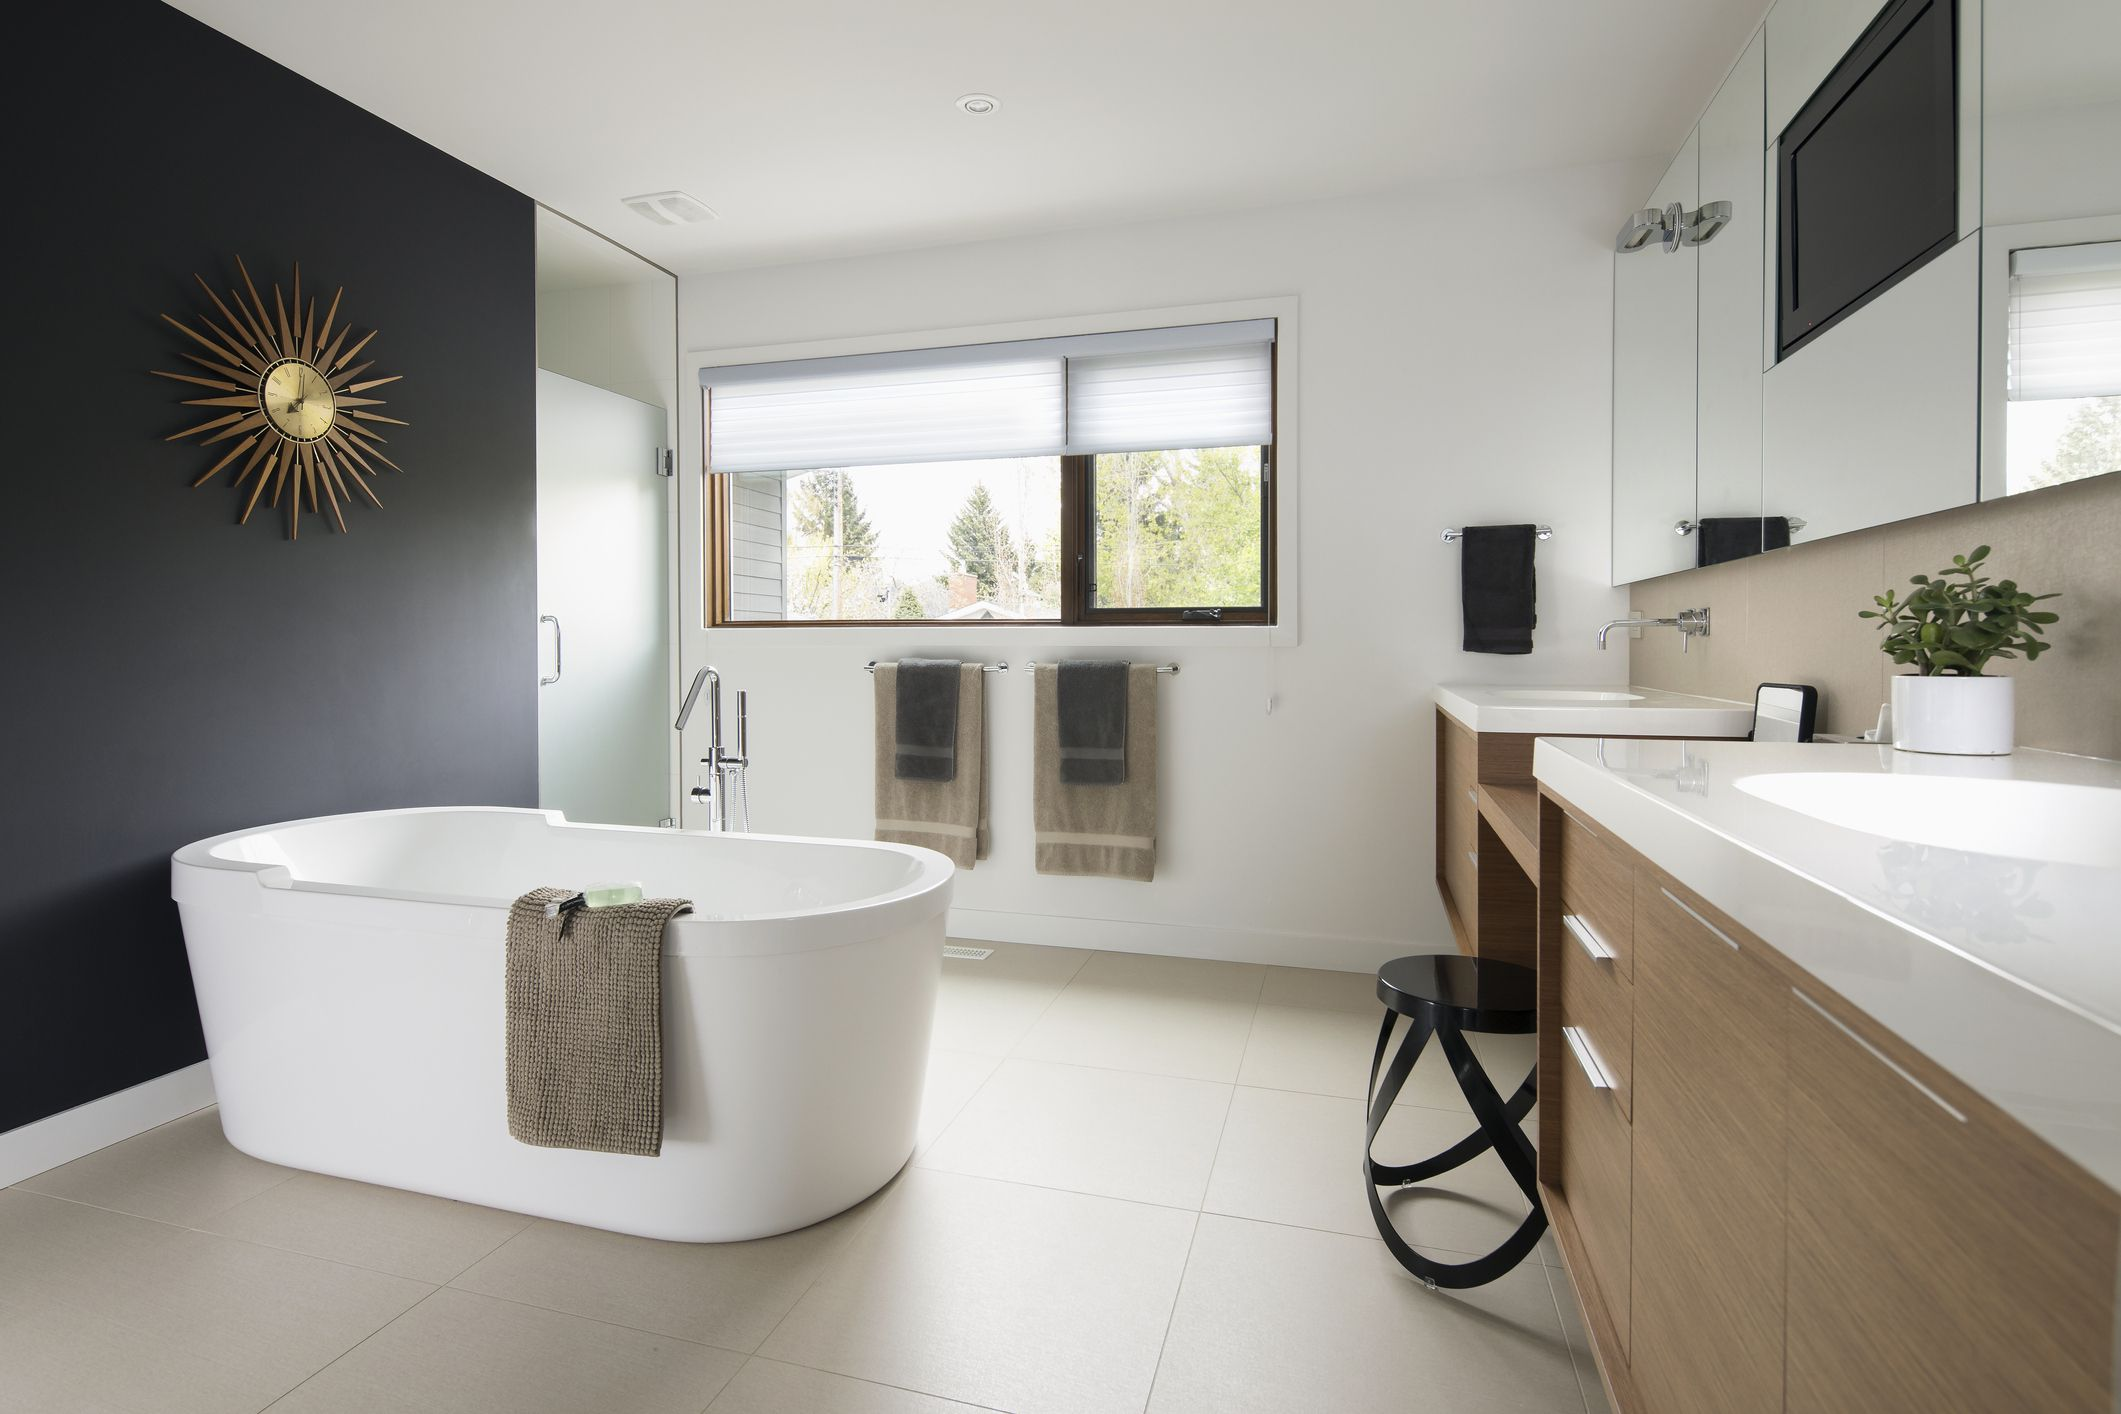 14 ideas for modern style bathrooms - White bathroom ideas photo gallery ...